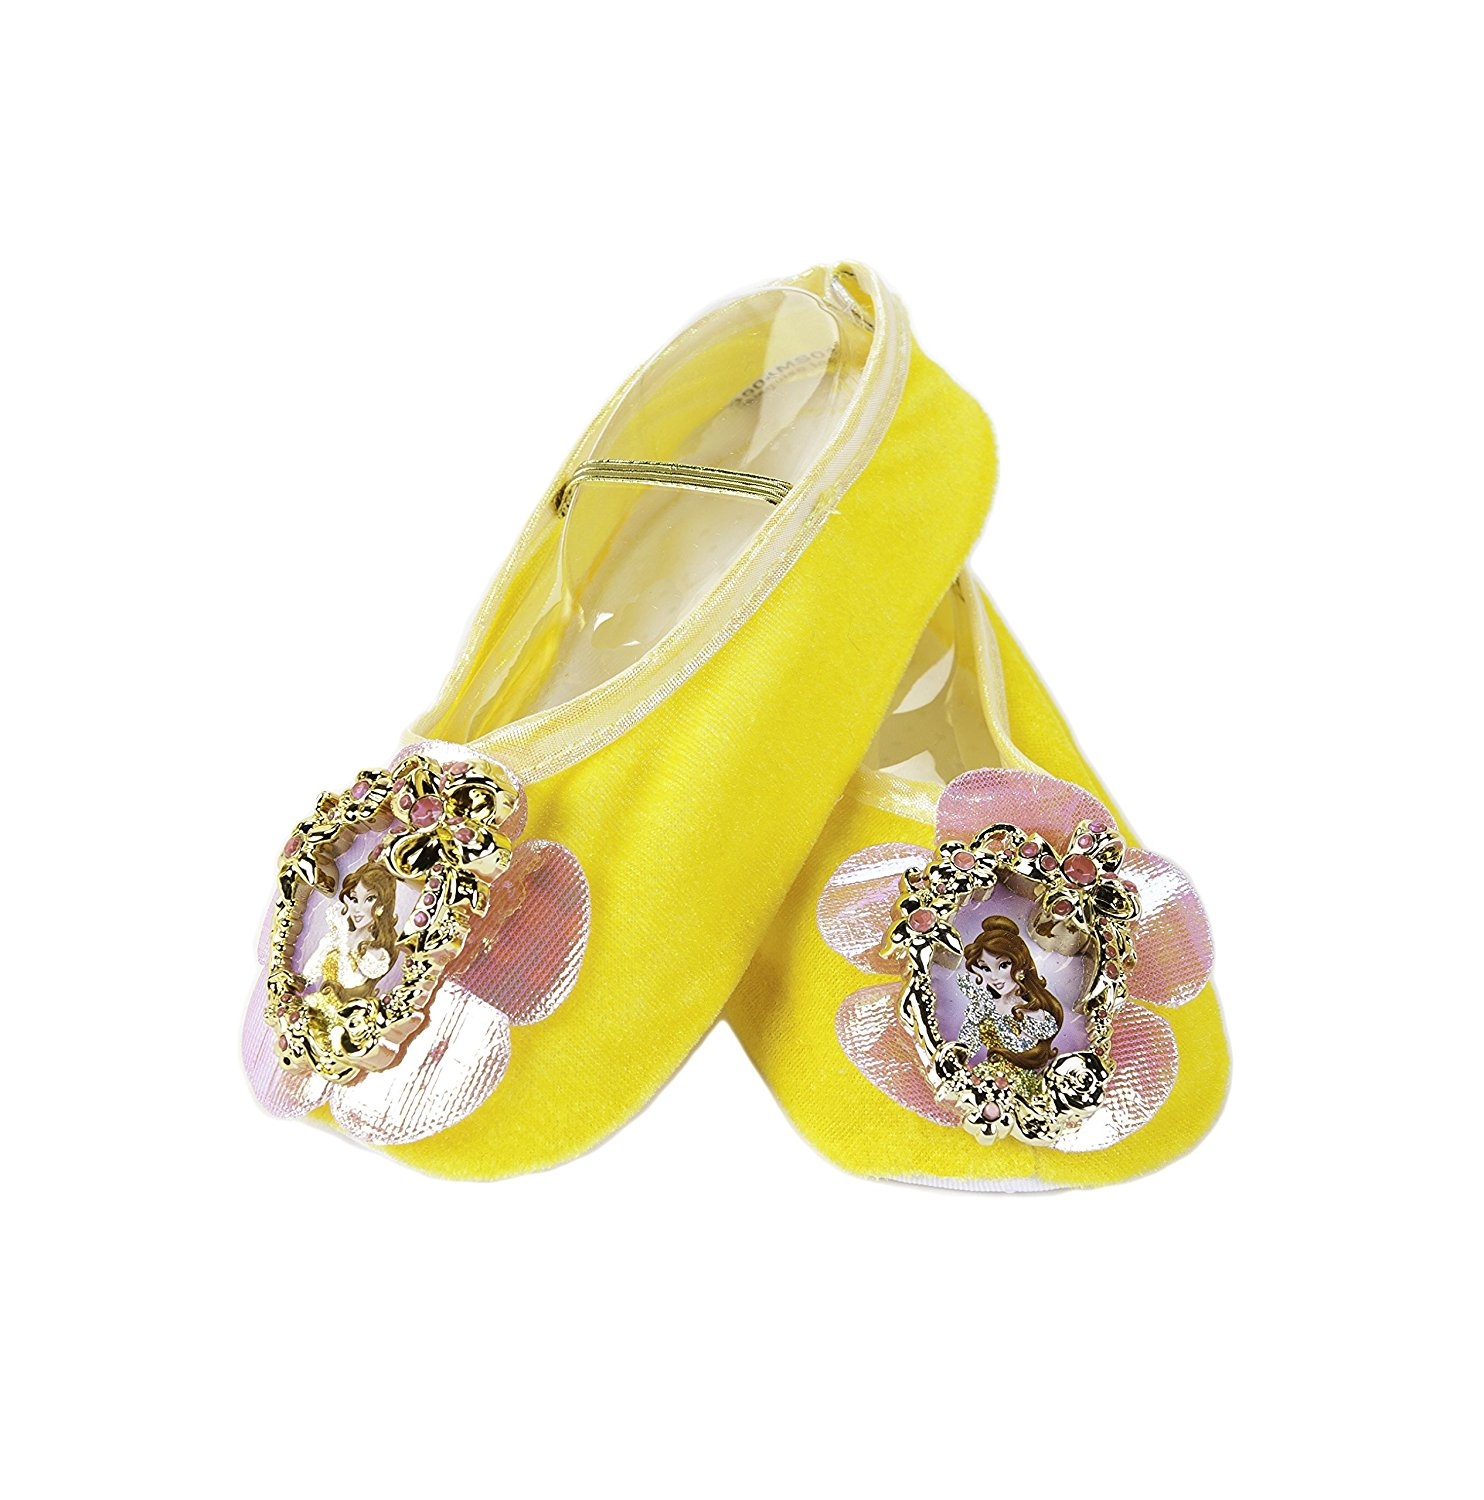 70f86b248476 Get Quotations · Belle Ballet Slippers